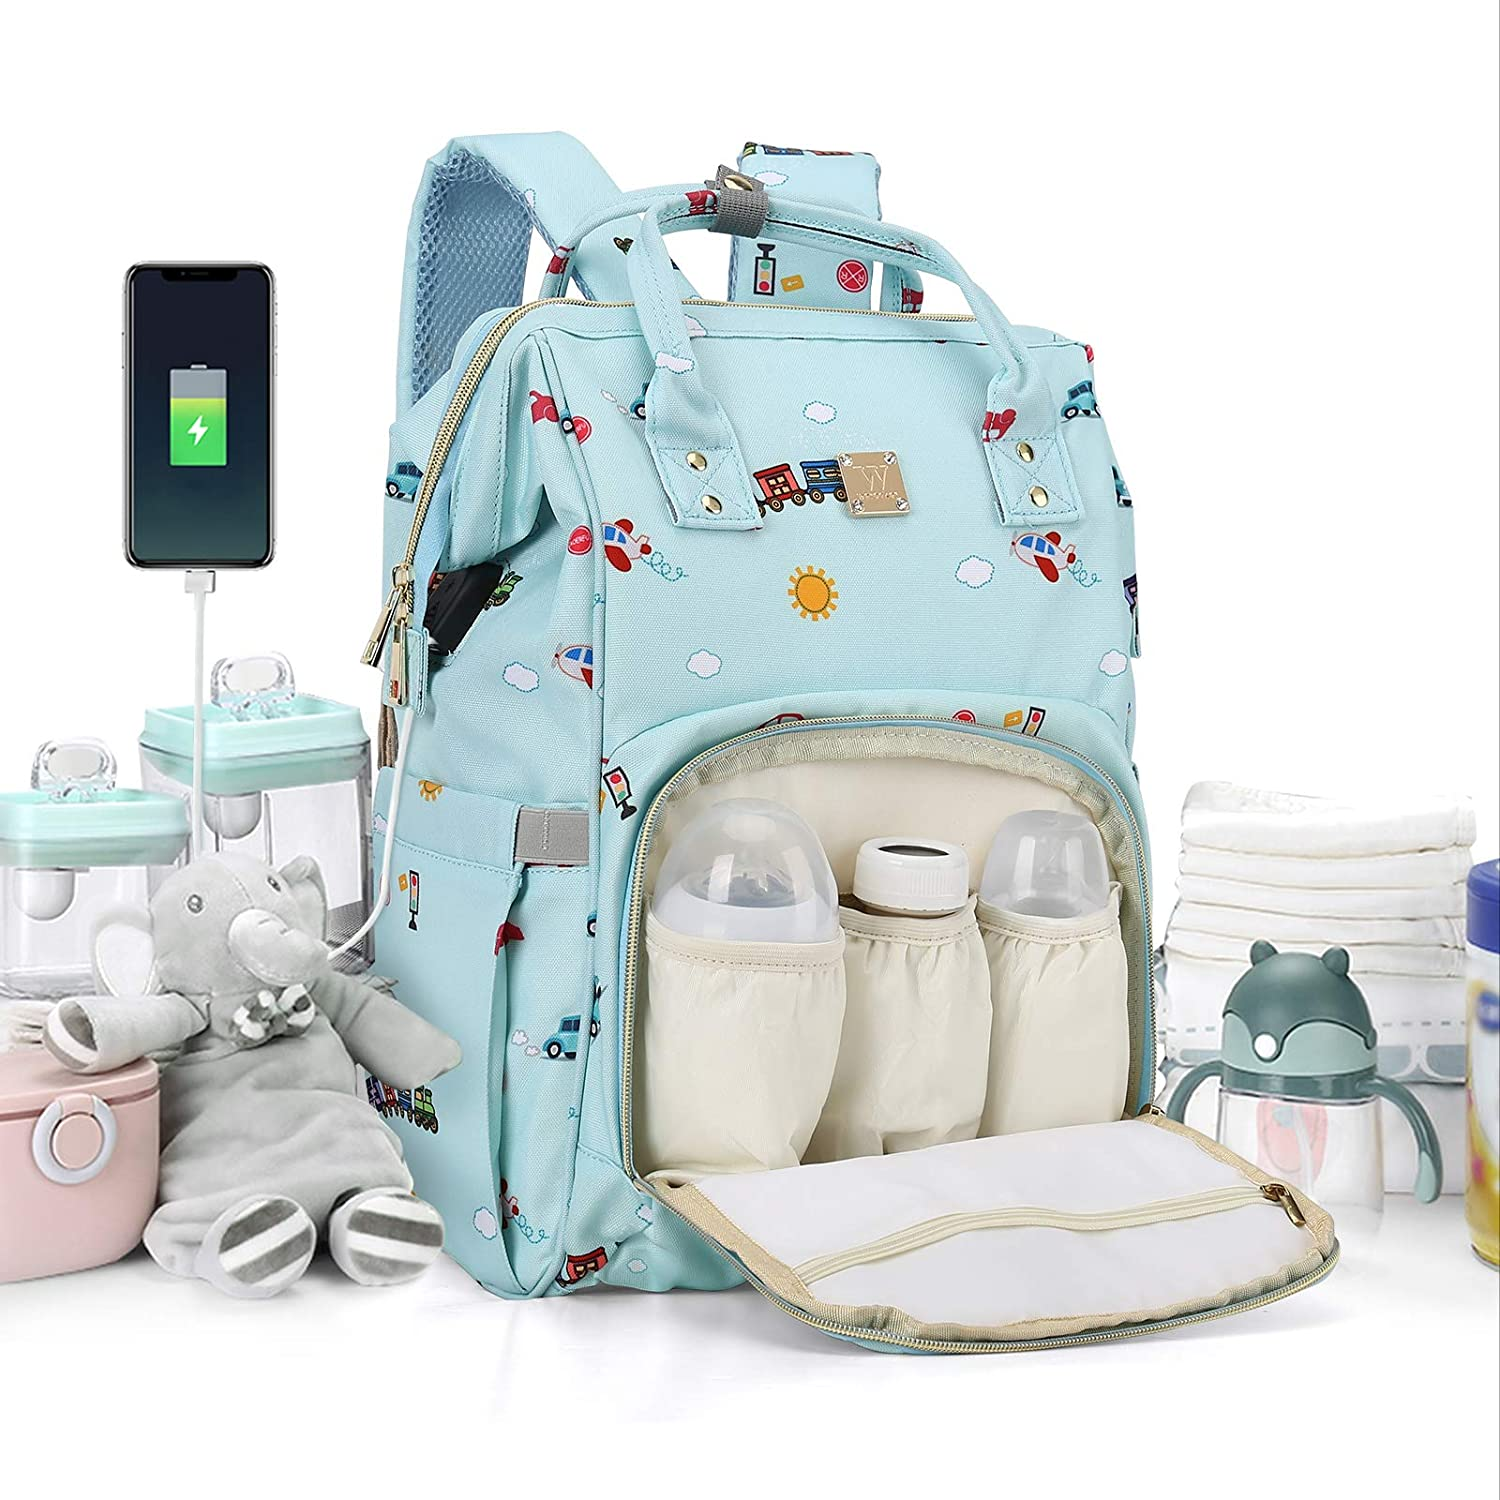 Diaper Bags Backpack Baby Bag for Mom Dad Baby Girls Boy, Cute Mult Diaper Nappy Bag Travel Back Pack,Waterproof Maternity Changing Bag Baby Stuff with USB Charging Port Stroller Straps Large Blue